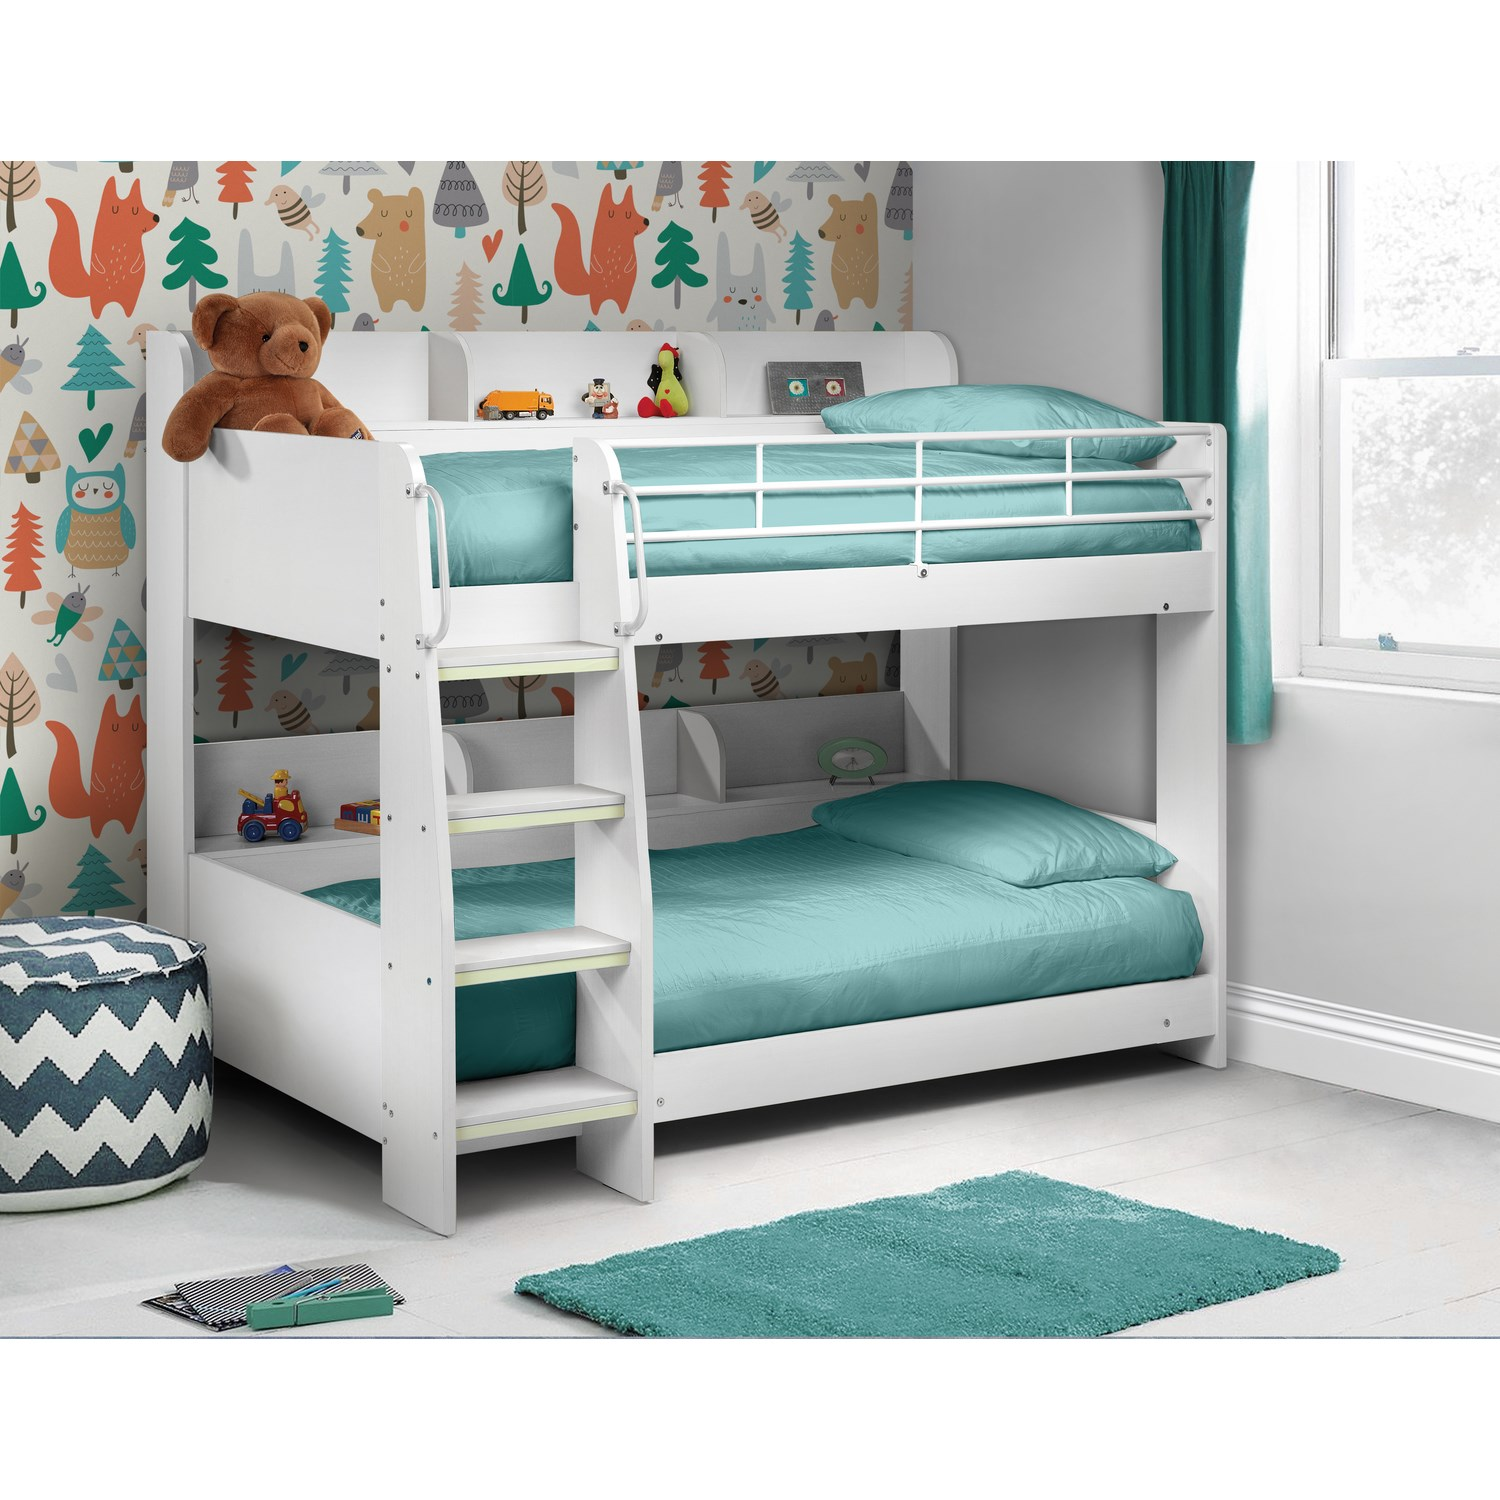 Details About Kids 3ft Bunk Bed In White Wooden Bed Frame With Storage  Shelves